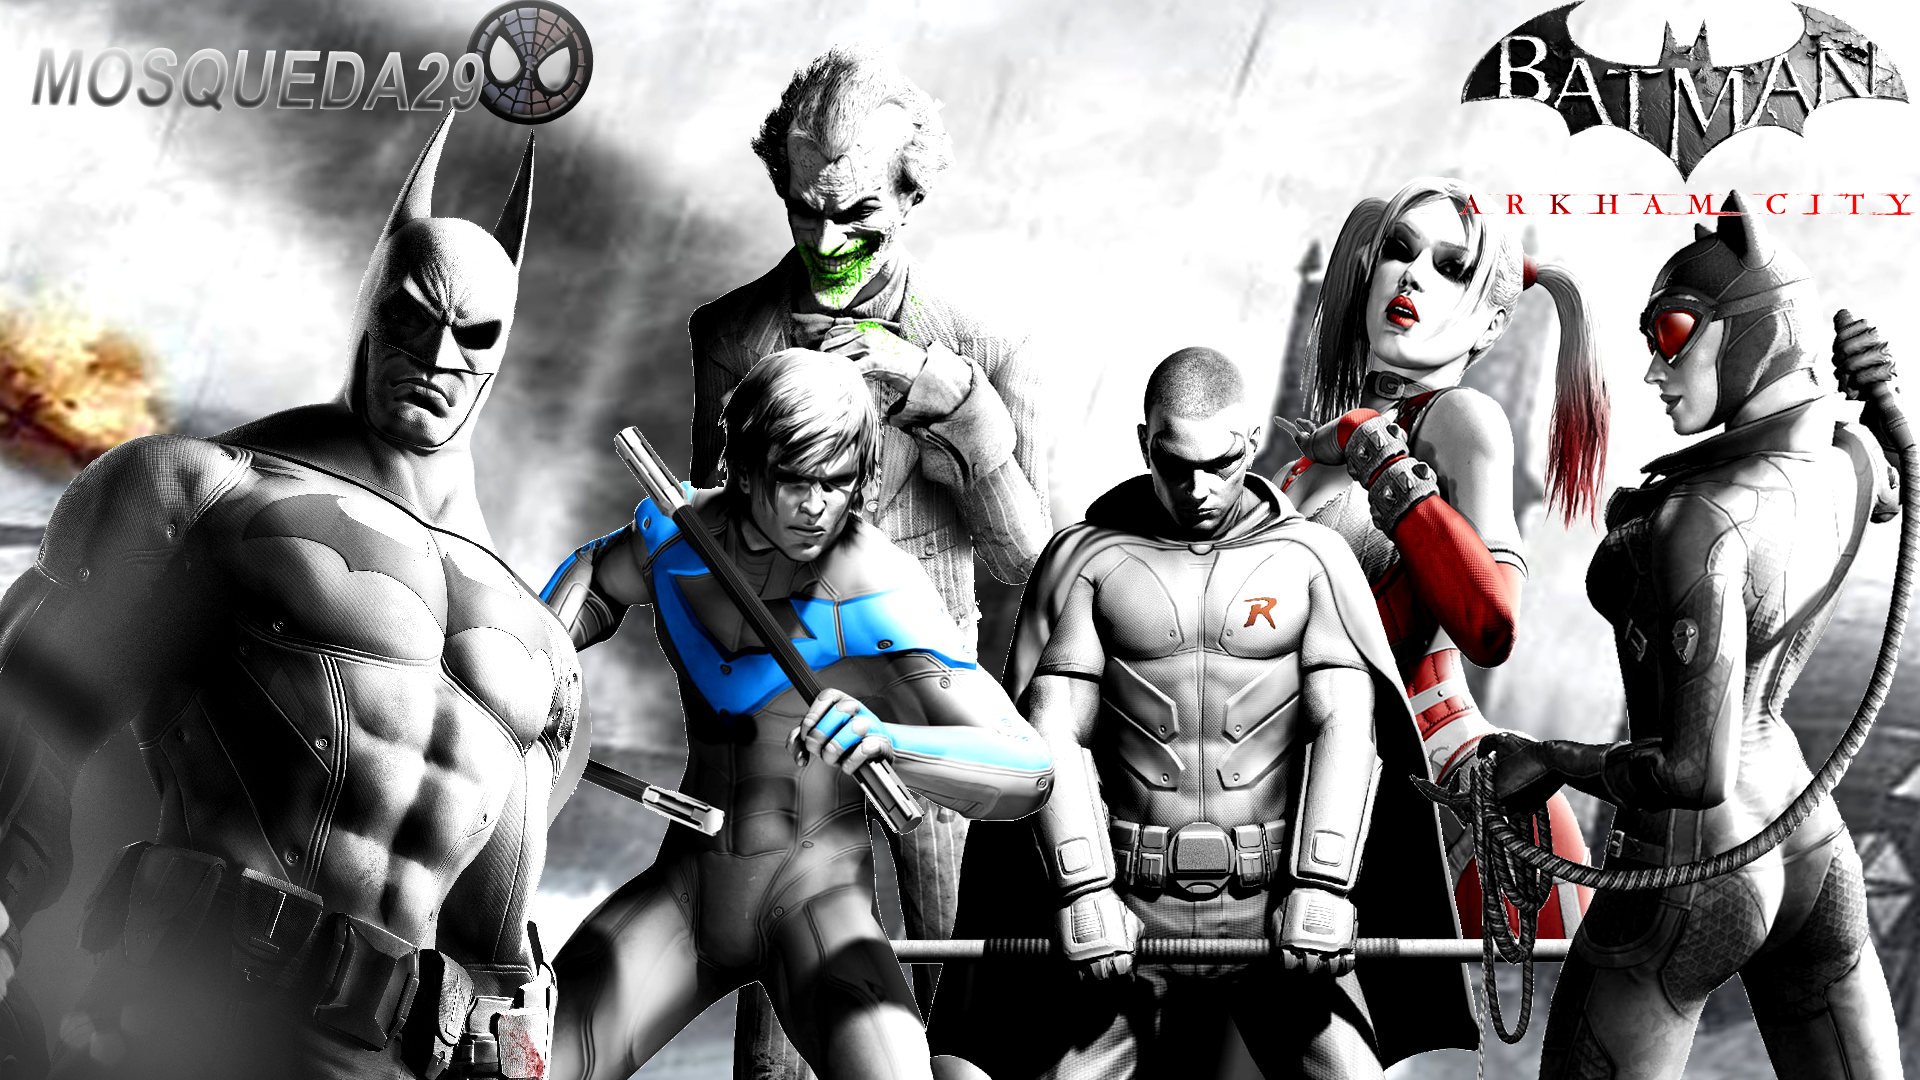 Batman Arkham City Wallpaper by Mosqueda29 1920x1080